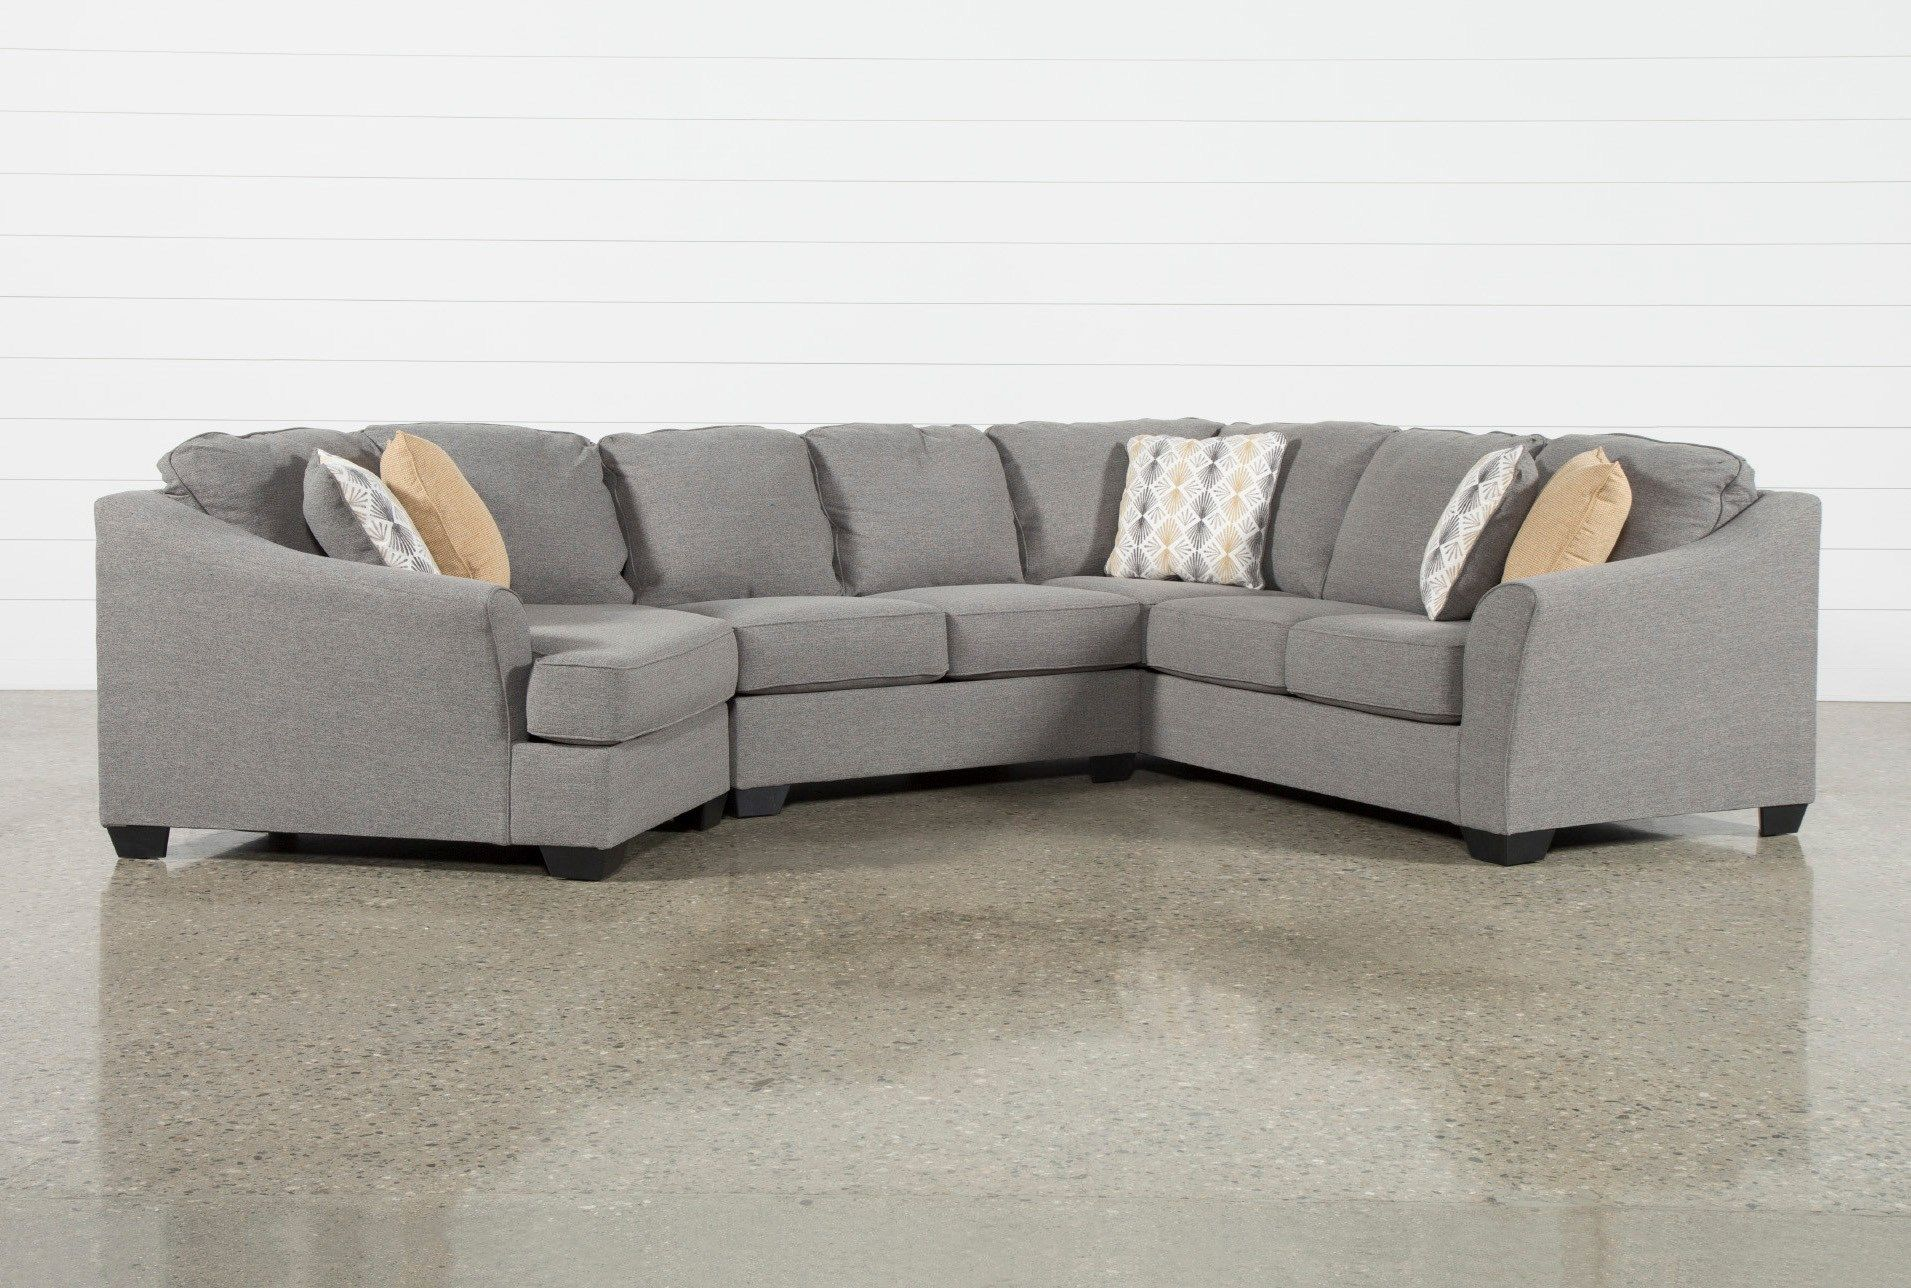 Fenton 3 Piece Sectional With Left Arm Facing Cuddler 3 Piece